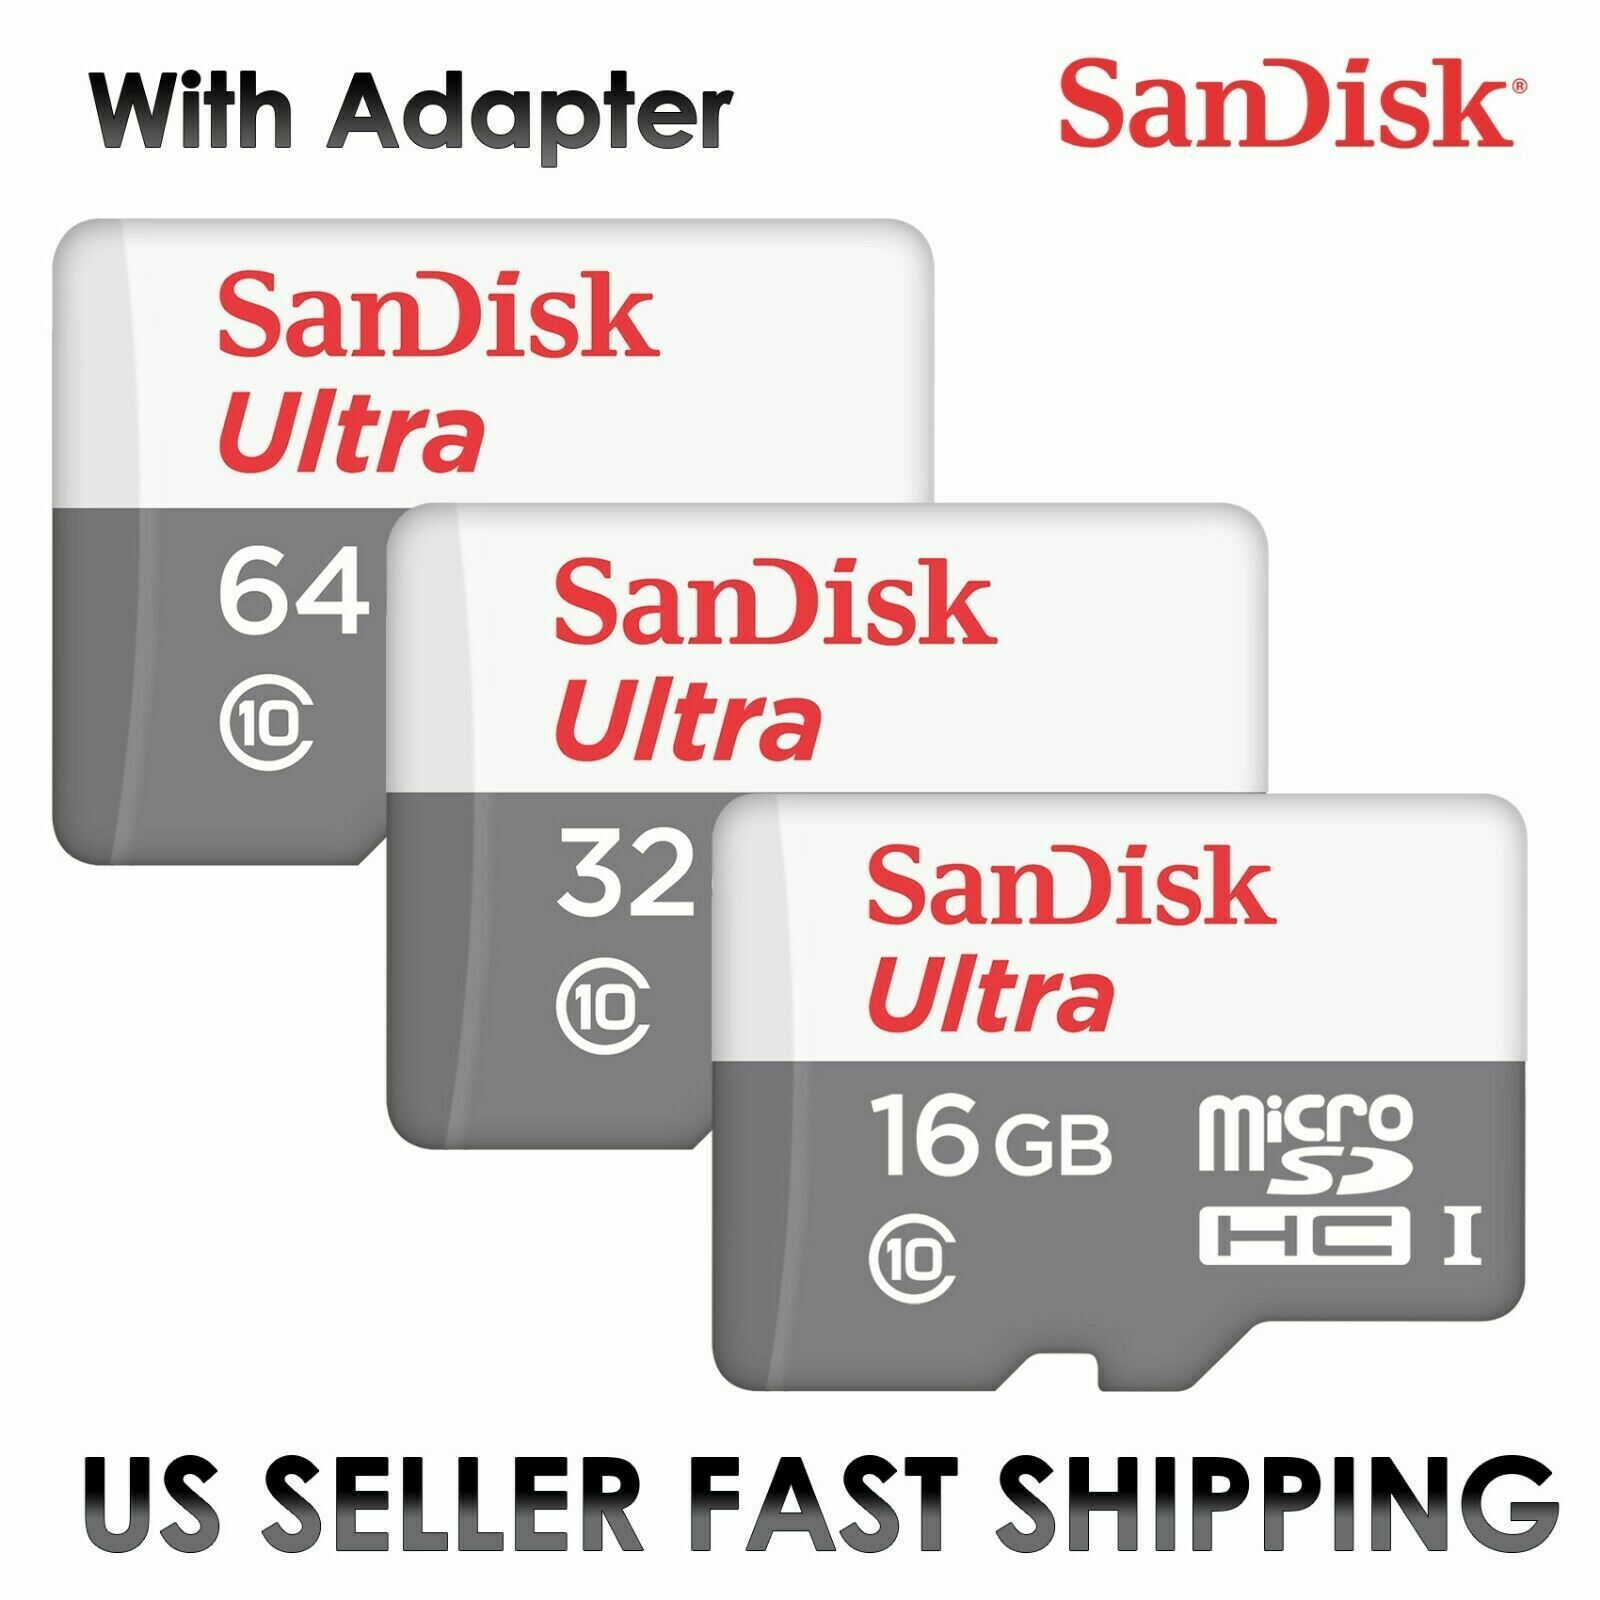 SanDisk Ultra 16GB 32GB 64GB 128GB Micro SD C10 SDHC Flash M